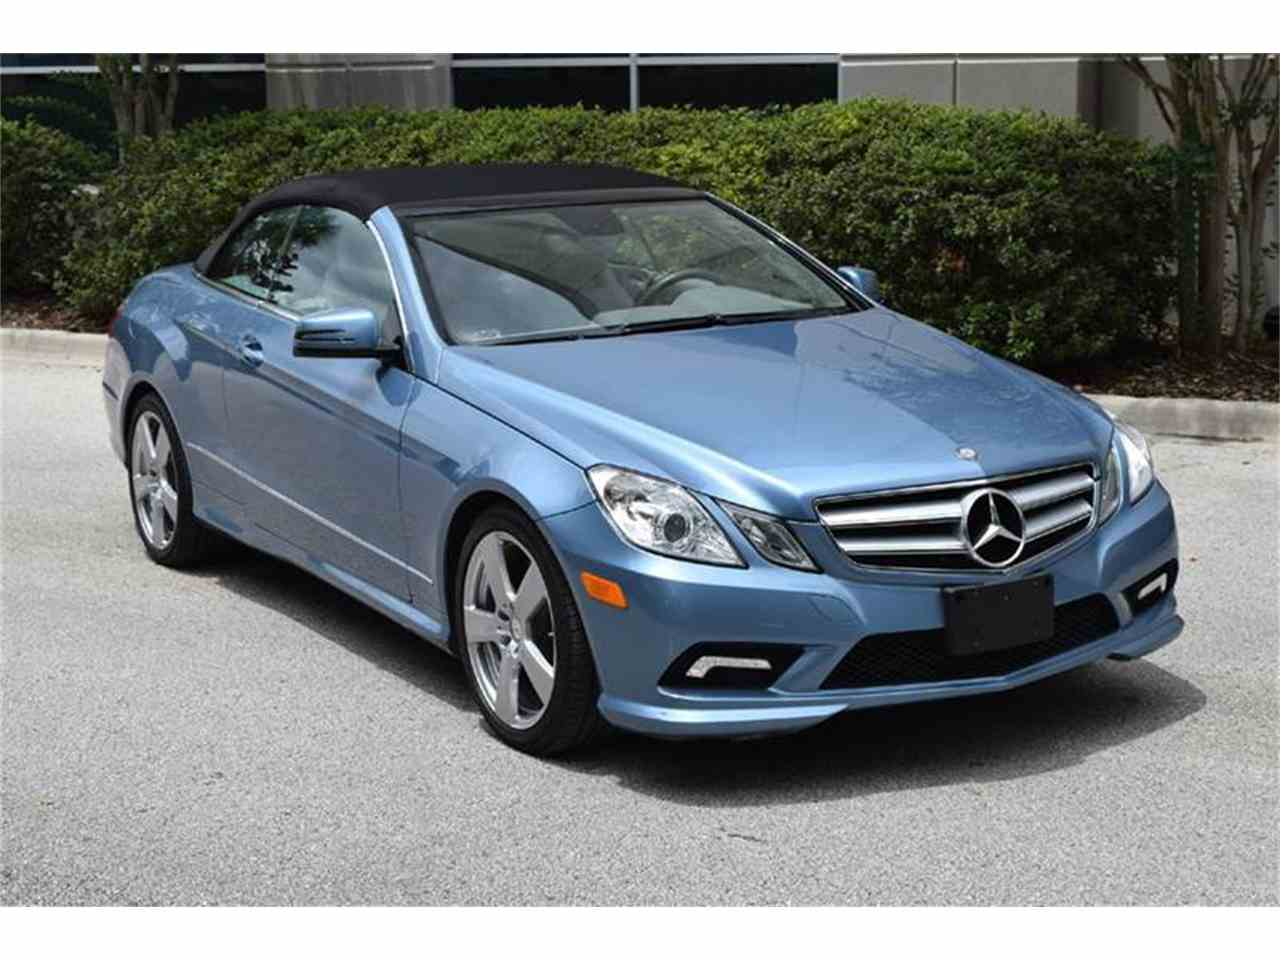 Large Picture of '11 Mercedes-Benz E-Class located in Orlando Florida - $31,900.00 Offered by Orlando Classic Cars - LWP3